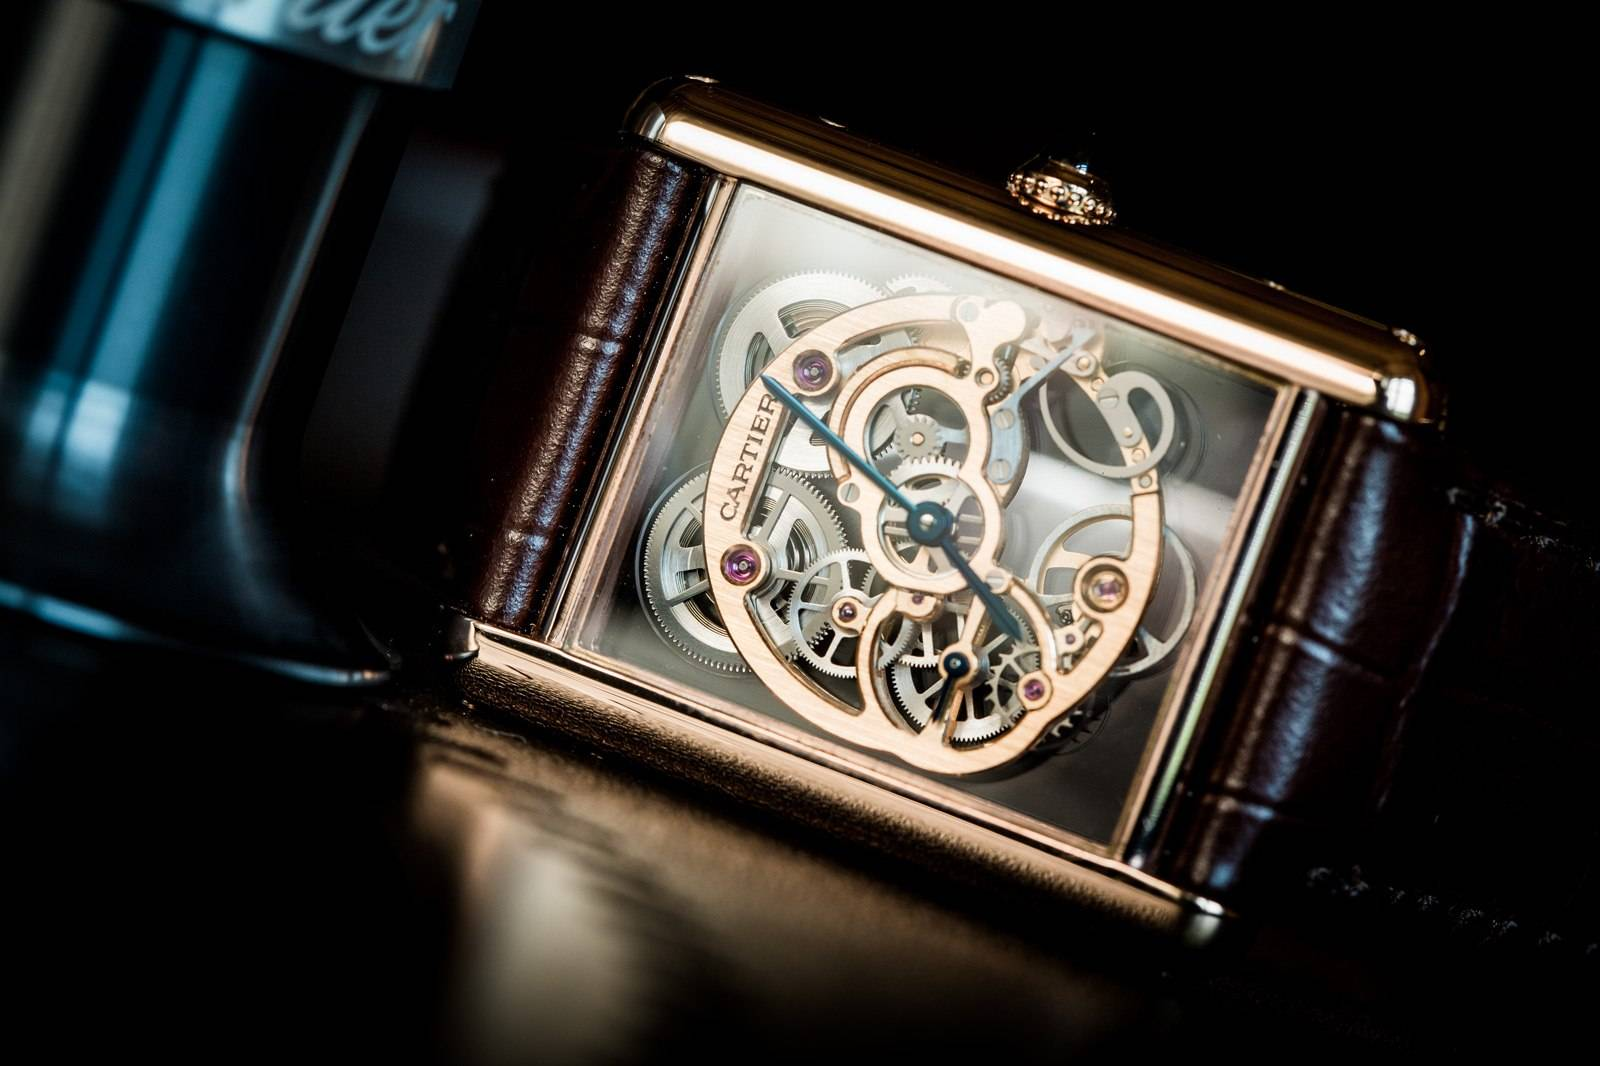 Cartier Tank Louis Cartier Skeleton Sapphire Watch SIHH 2015 Front